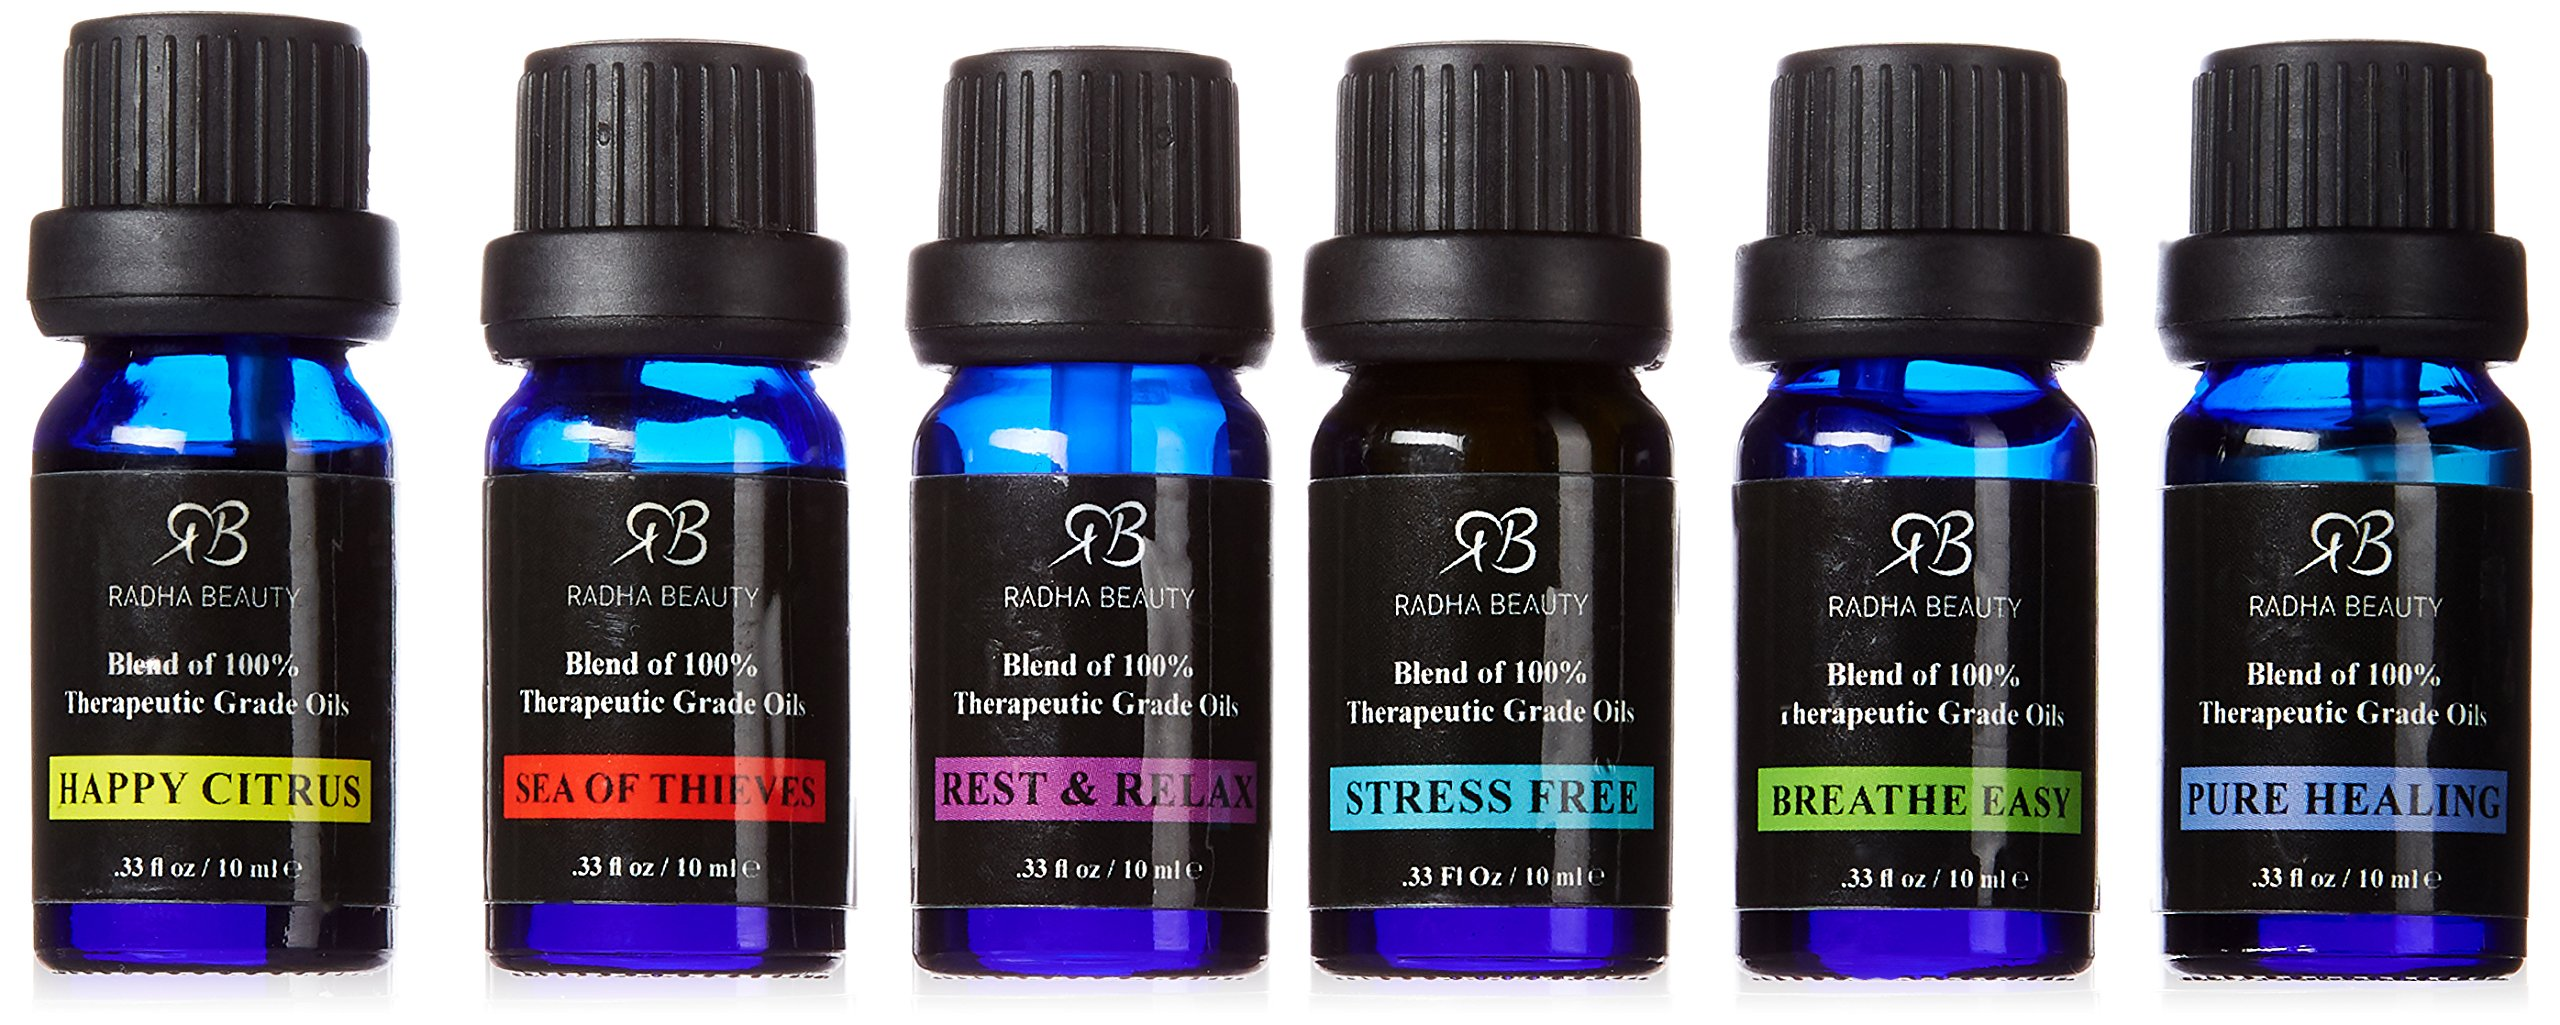 Radha Beauty Essential Oils 6 Blend set for Aromatherapy - 100% Pure Therapeutic Grade Four Thieves, Stress Free, Rest & Relax, Breathe Easy, Pure Healing, Happy Citrus, Gift Set - 6/10 ml